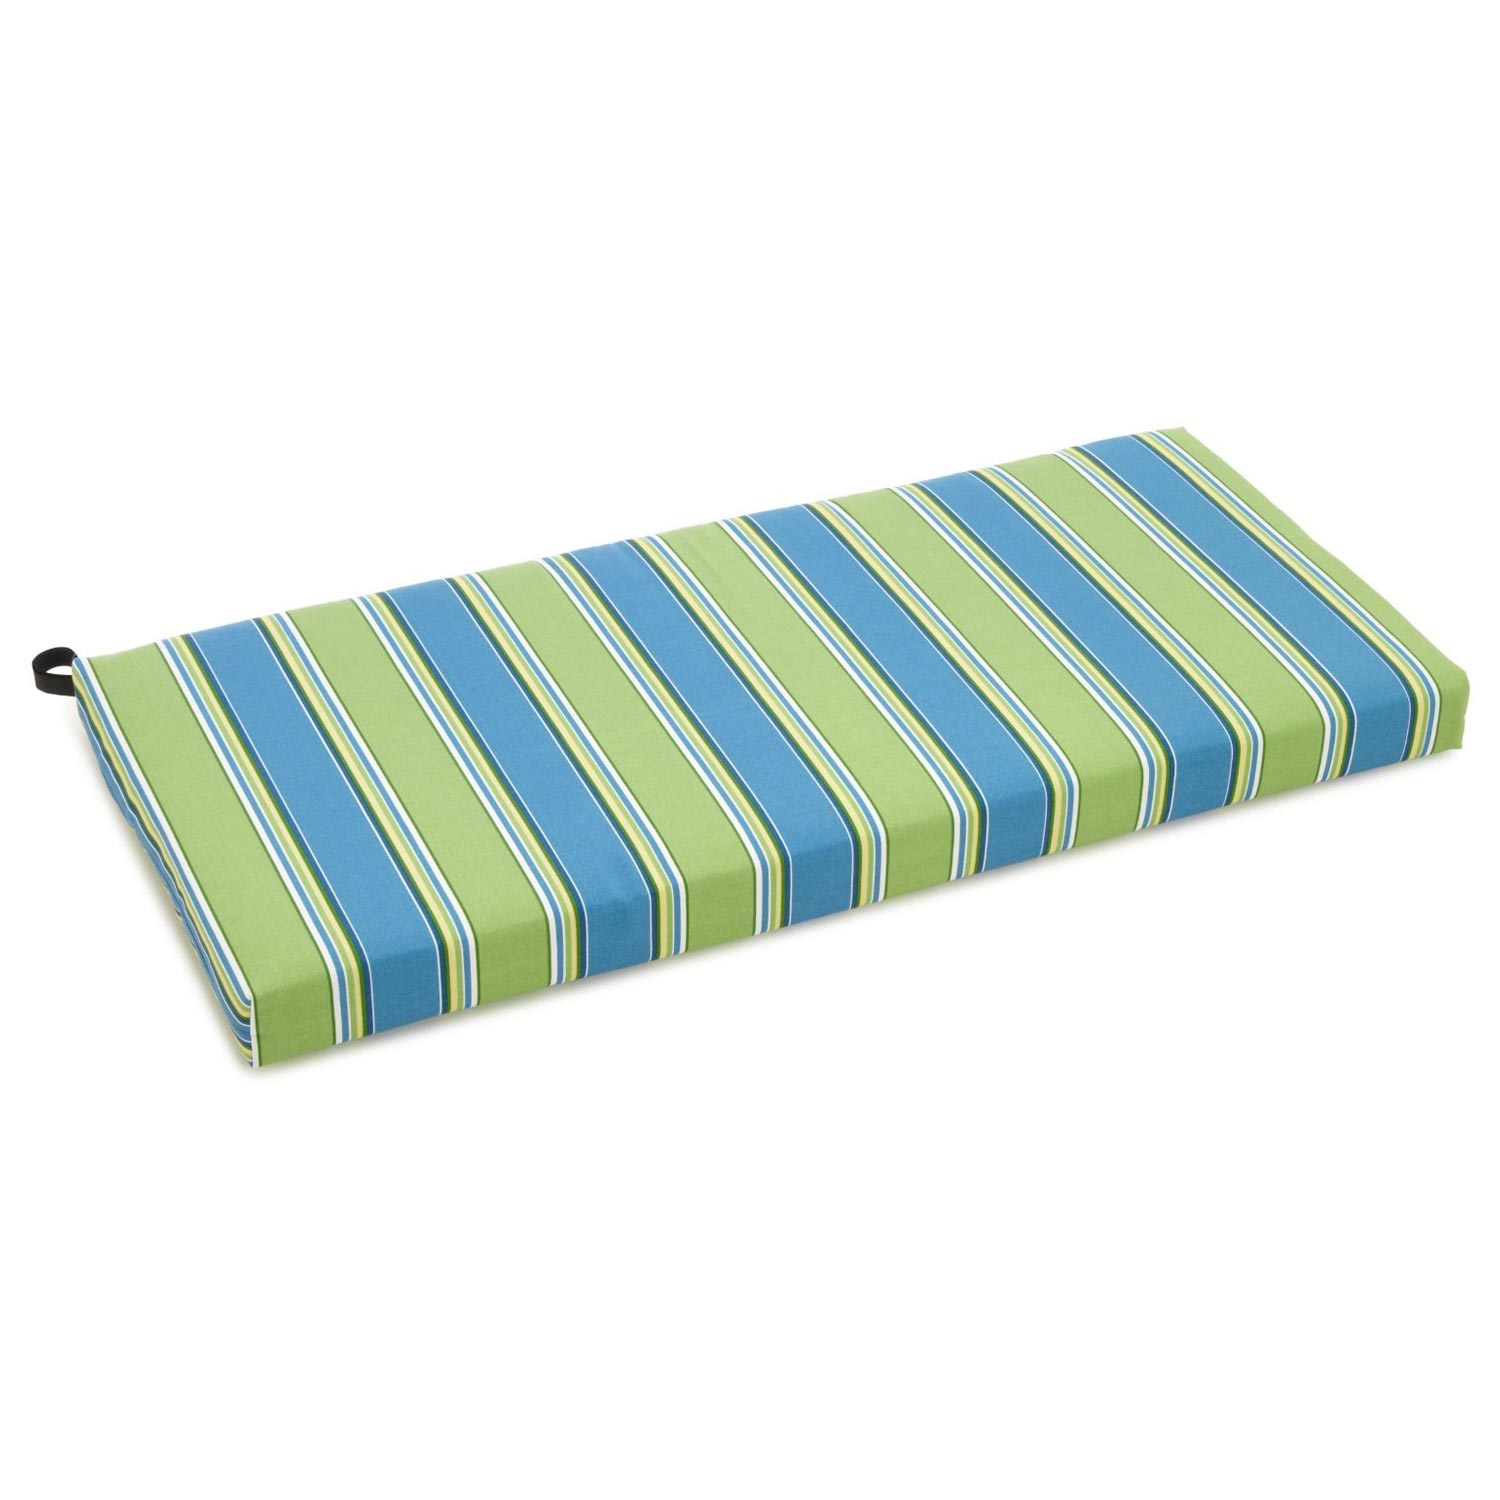 40 Quot X 19 Quot Patio Bench Swing Cushion Patterned Fabric